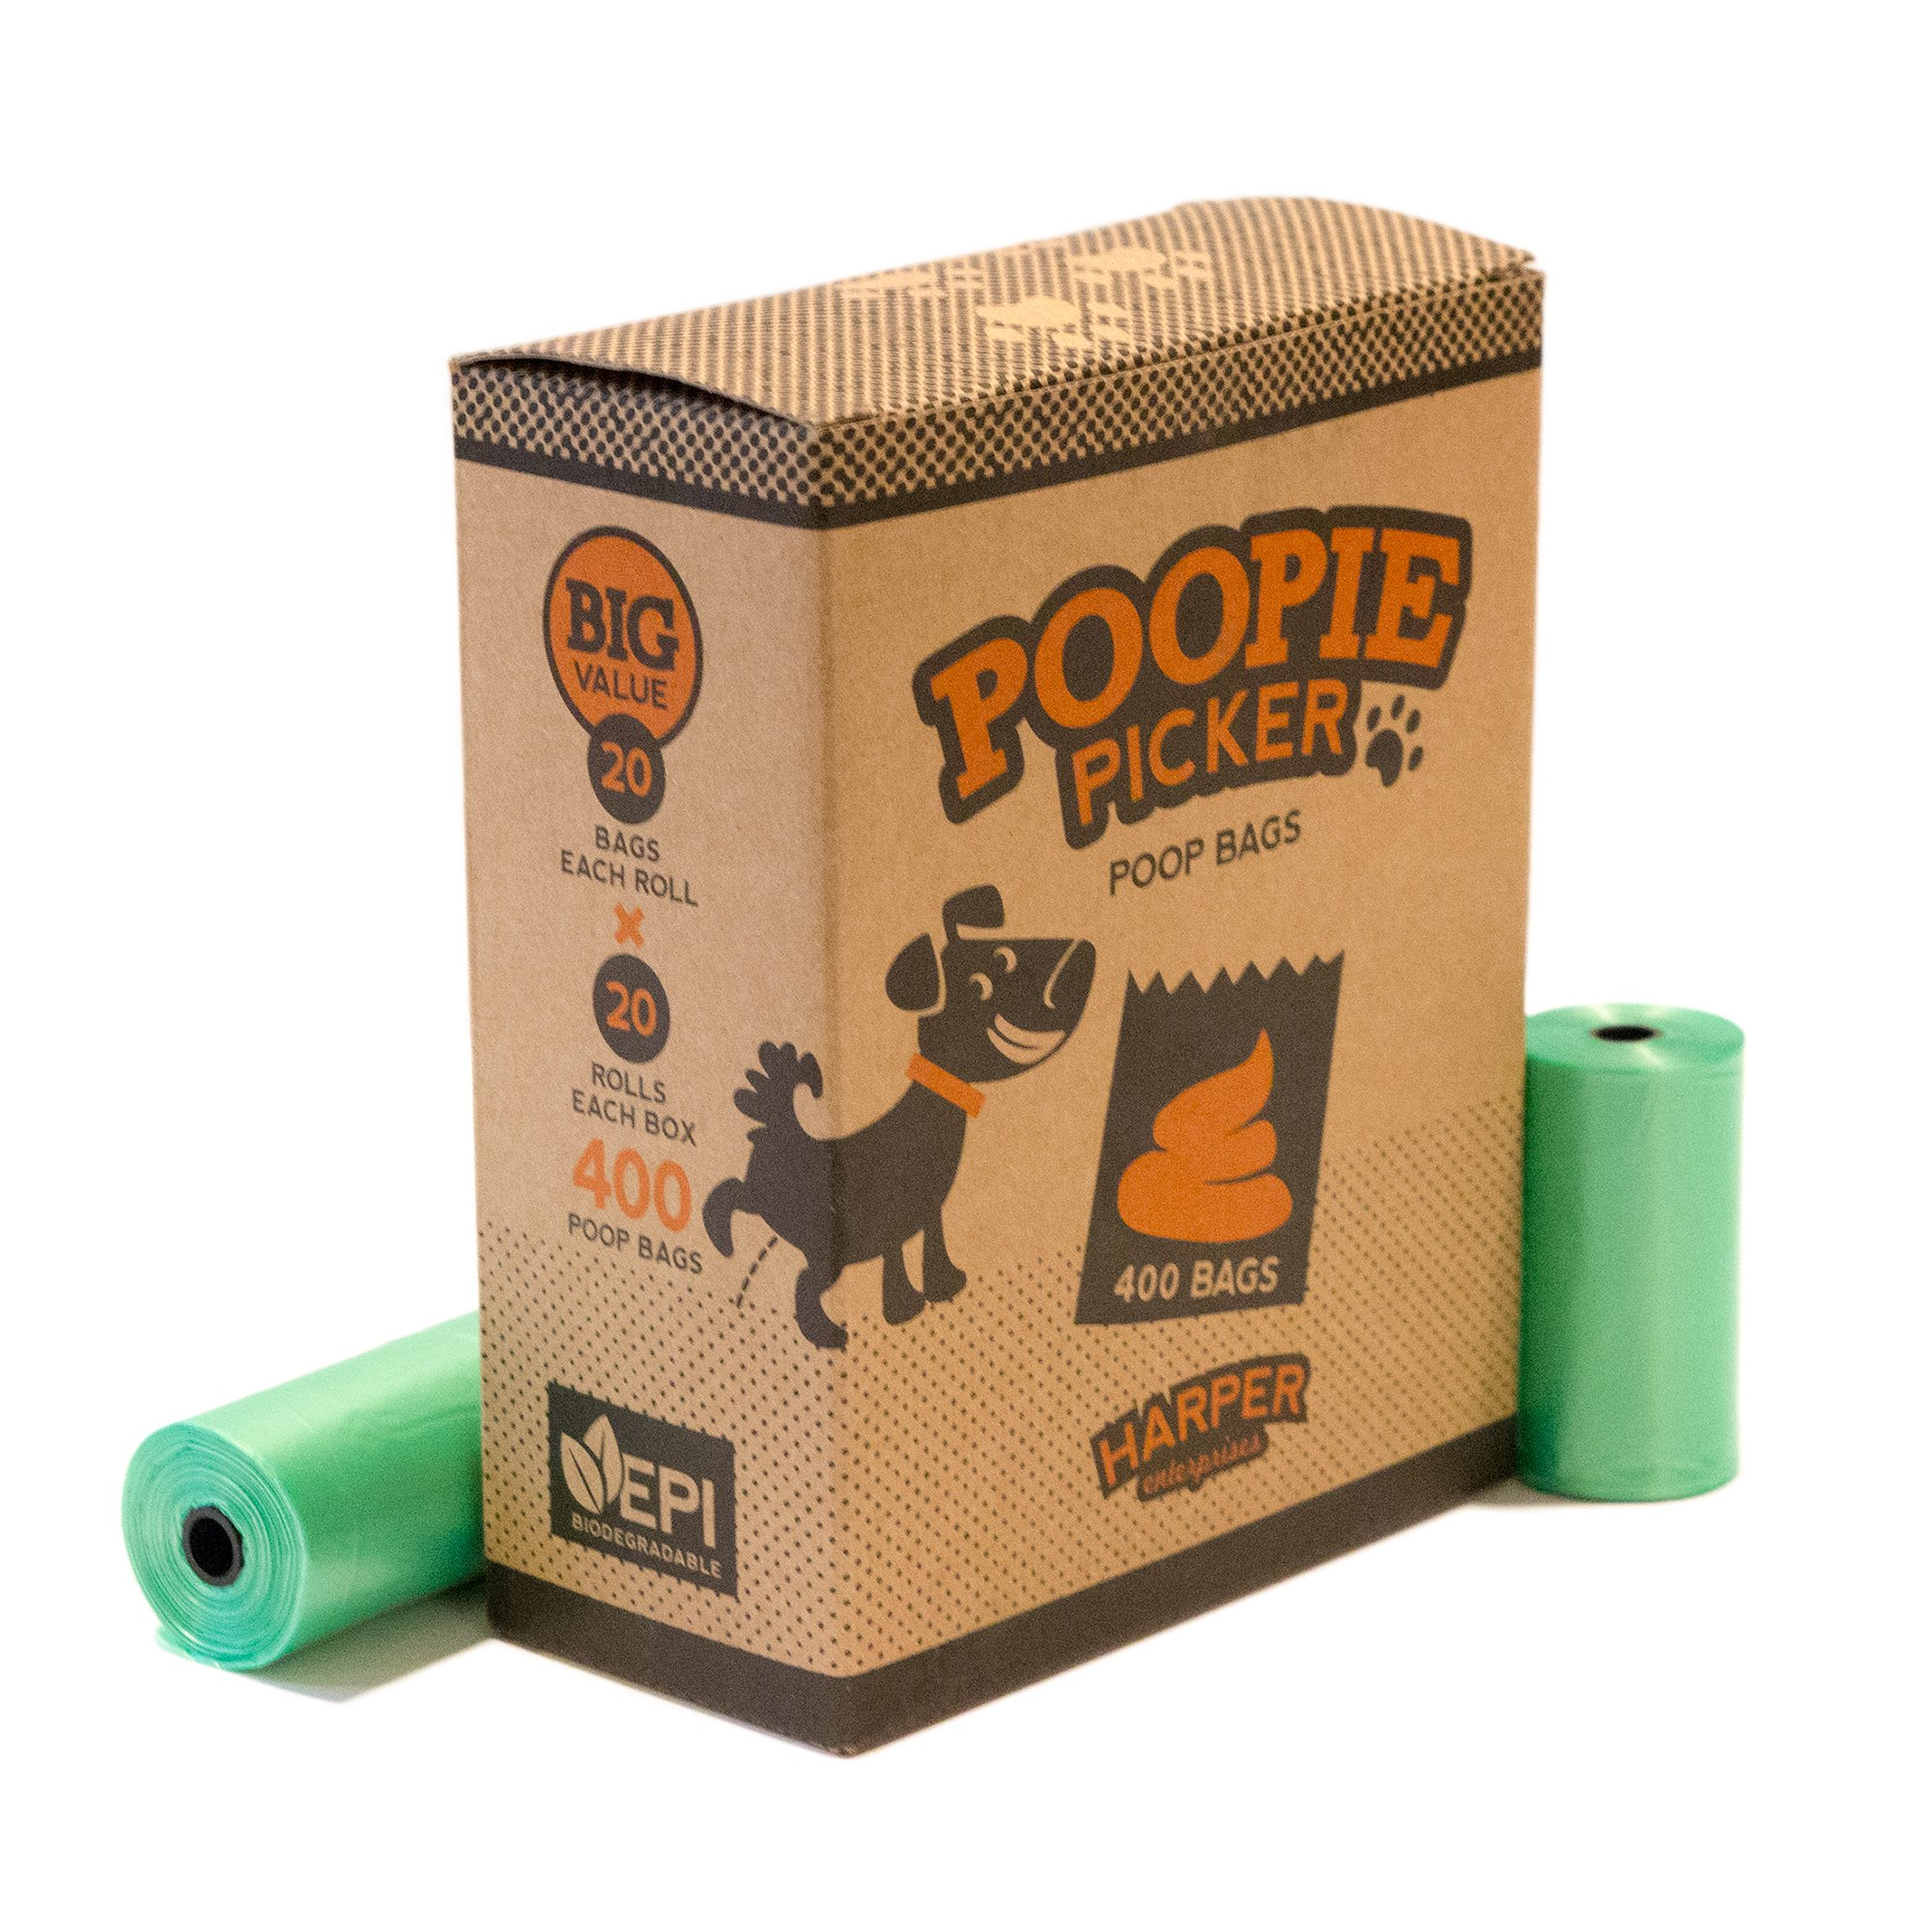 Poopie Picker, Dog Poop Bags, 20 Rolls/400 Count, Unscented Leak-Proof Pet Waste Bags